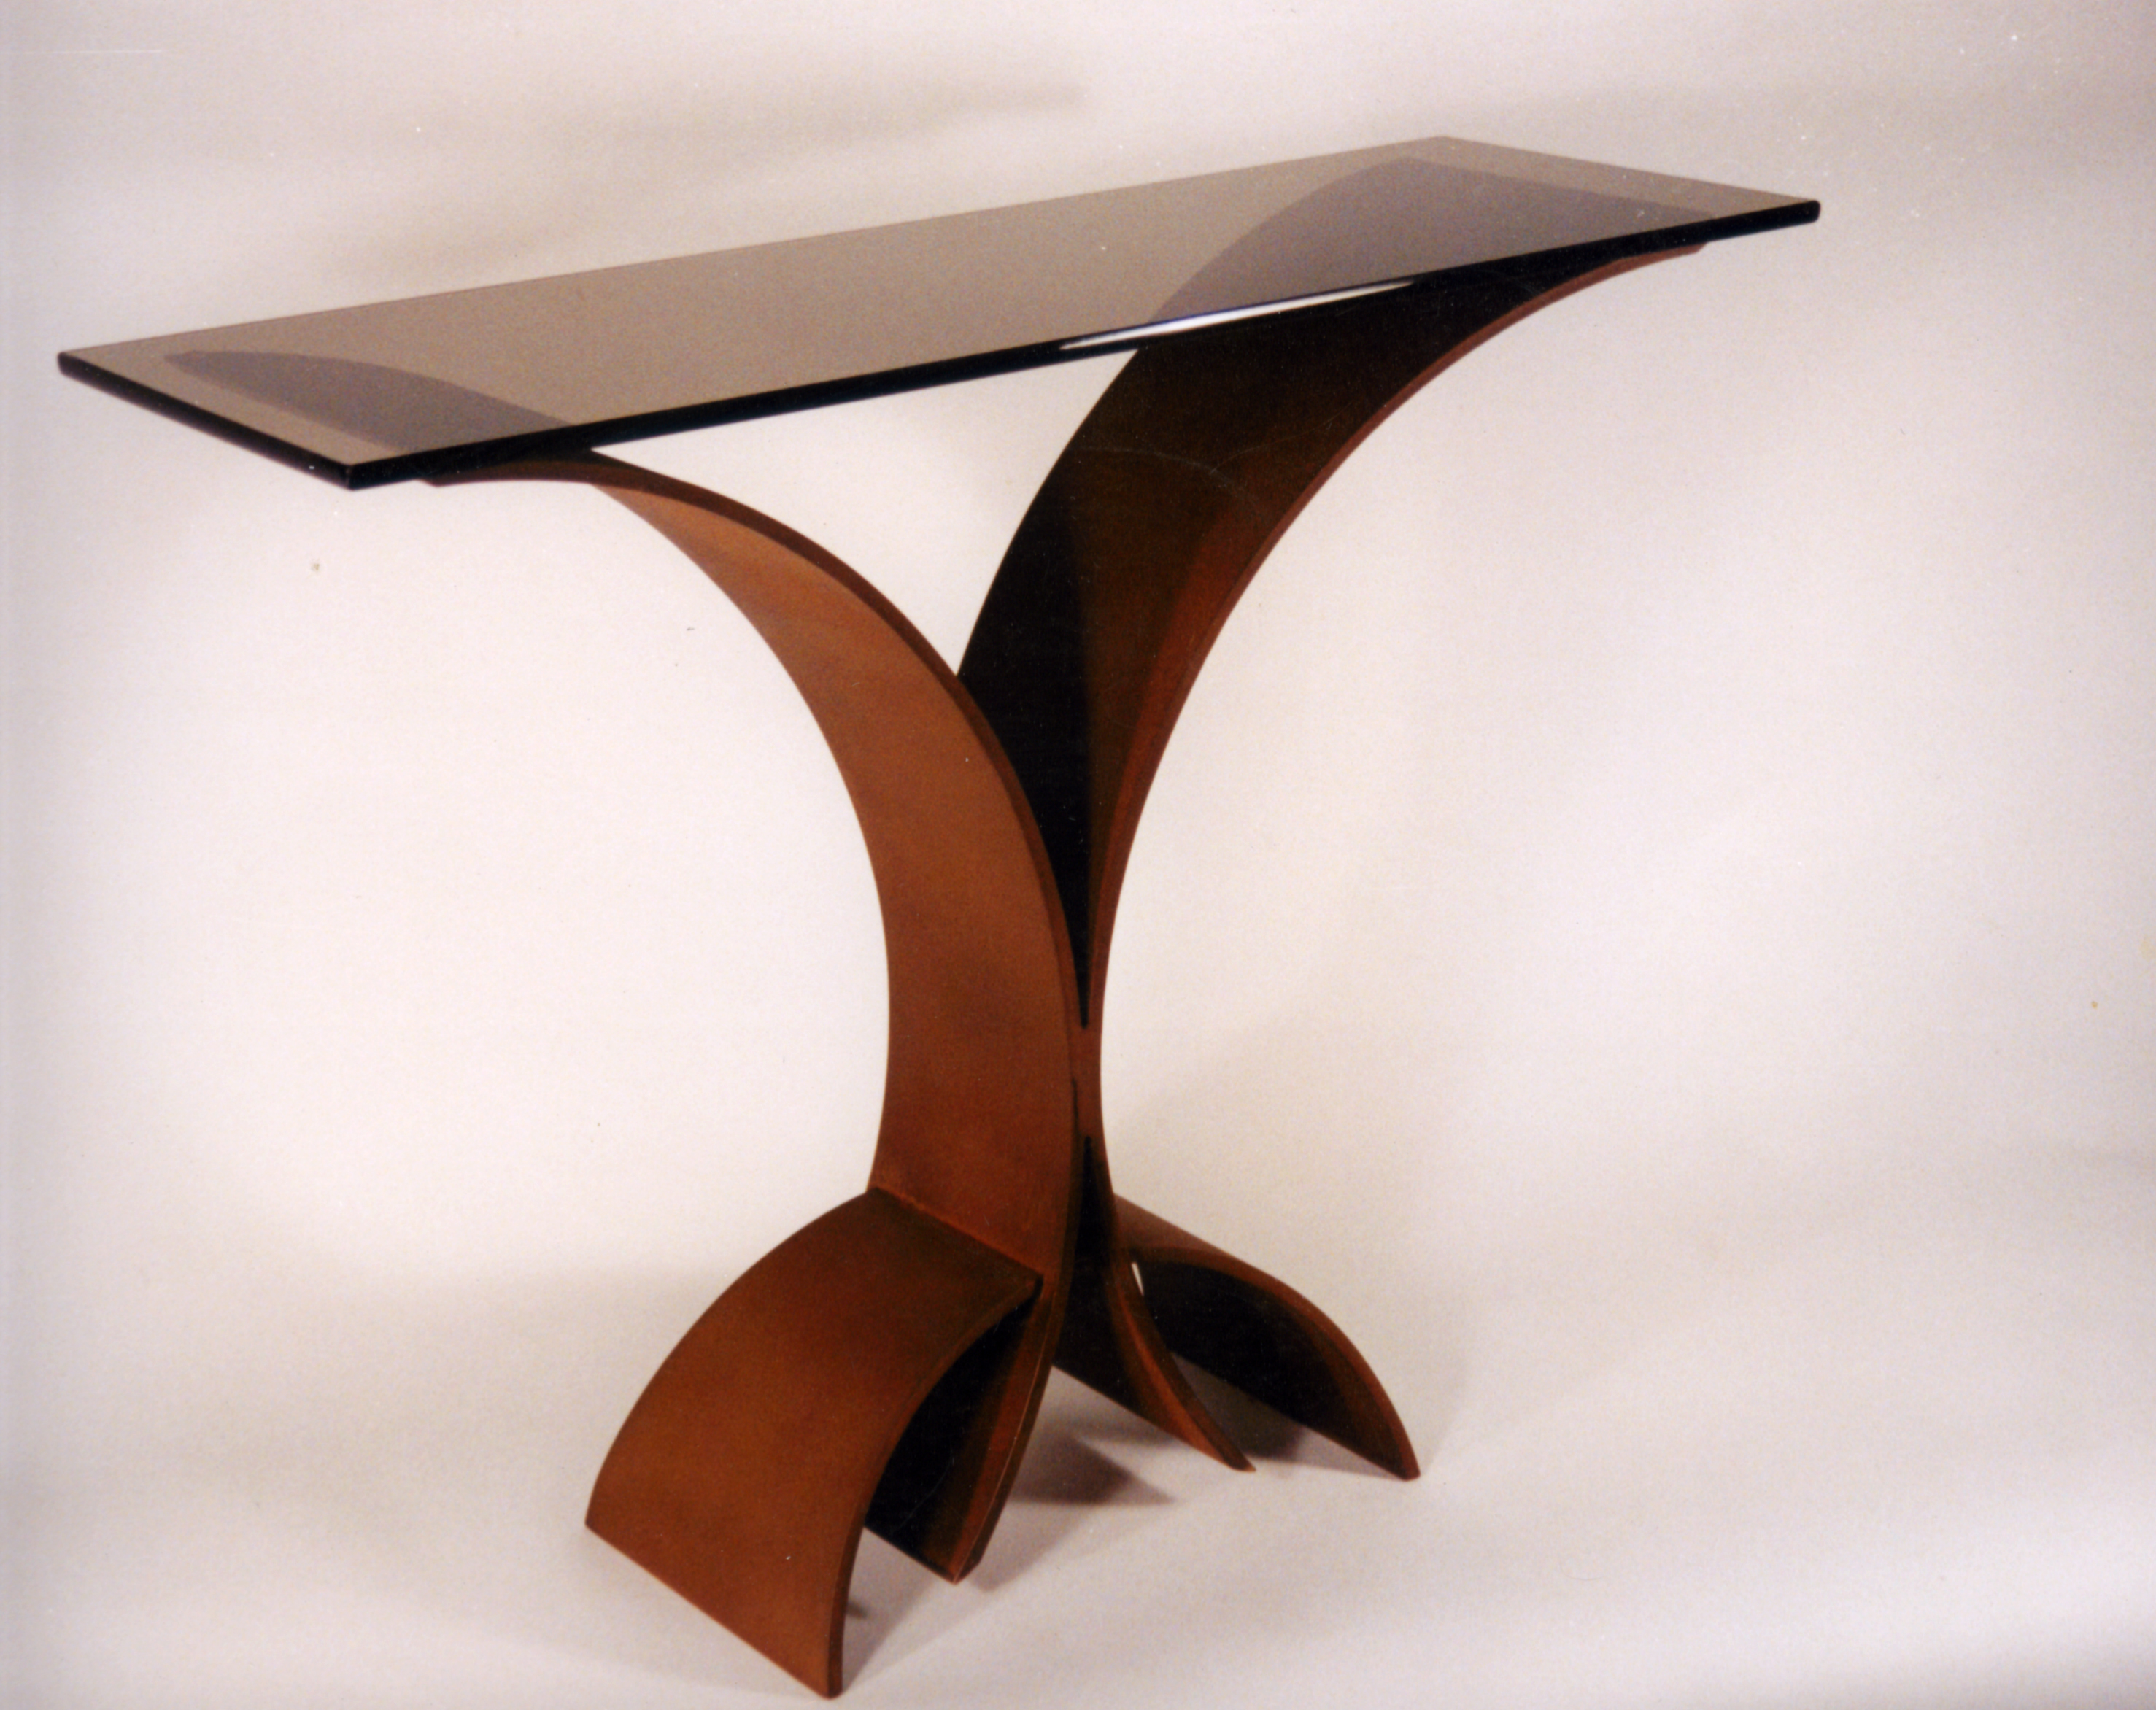 TABLES amp BASES Gillberg Design Inc